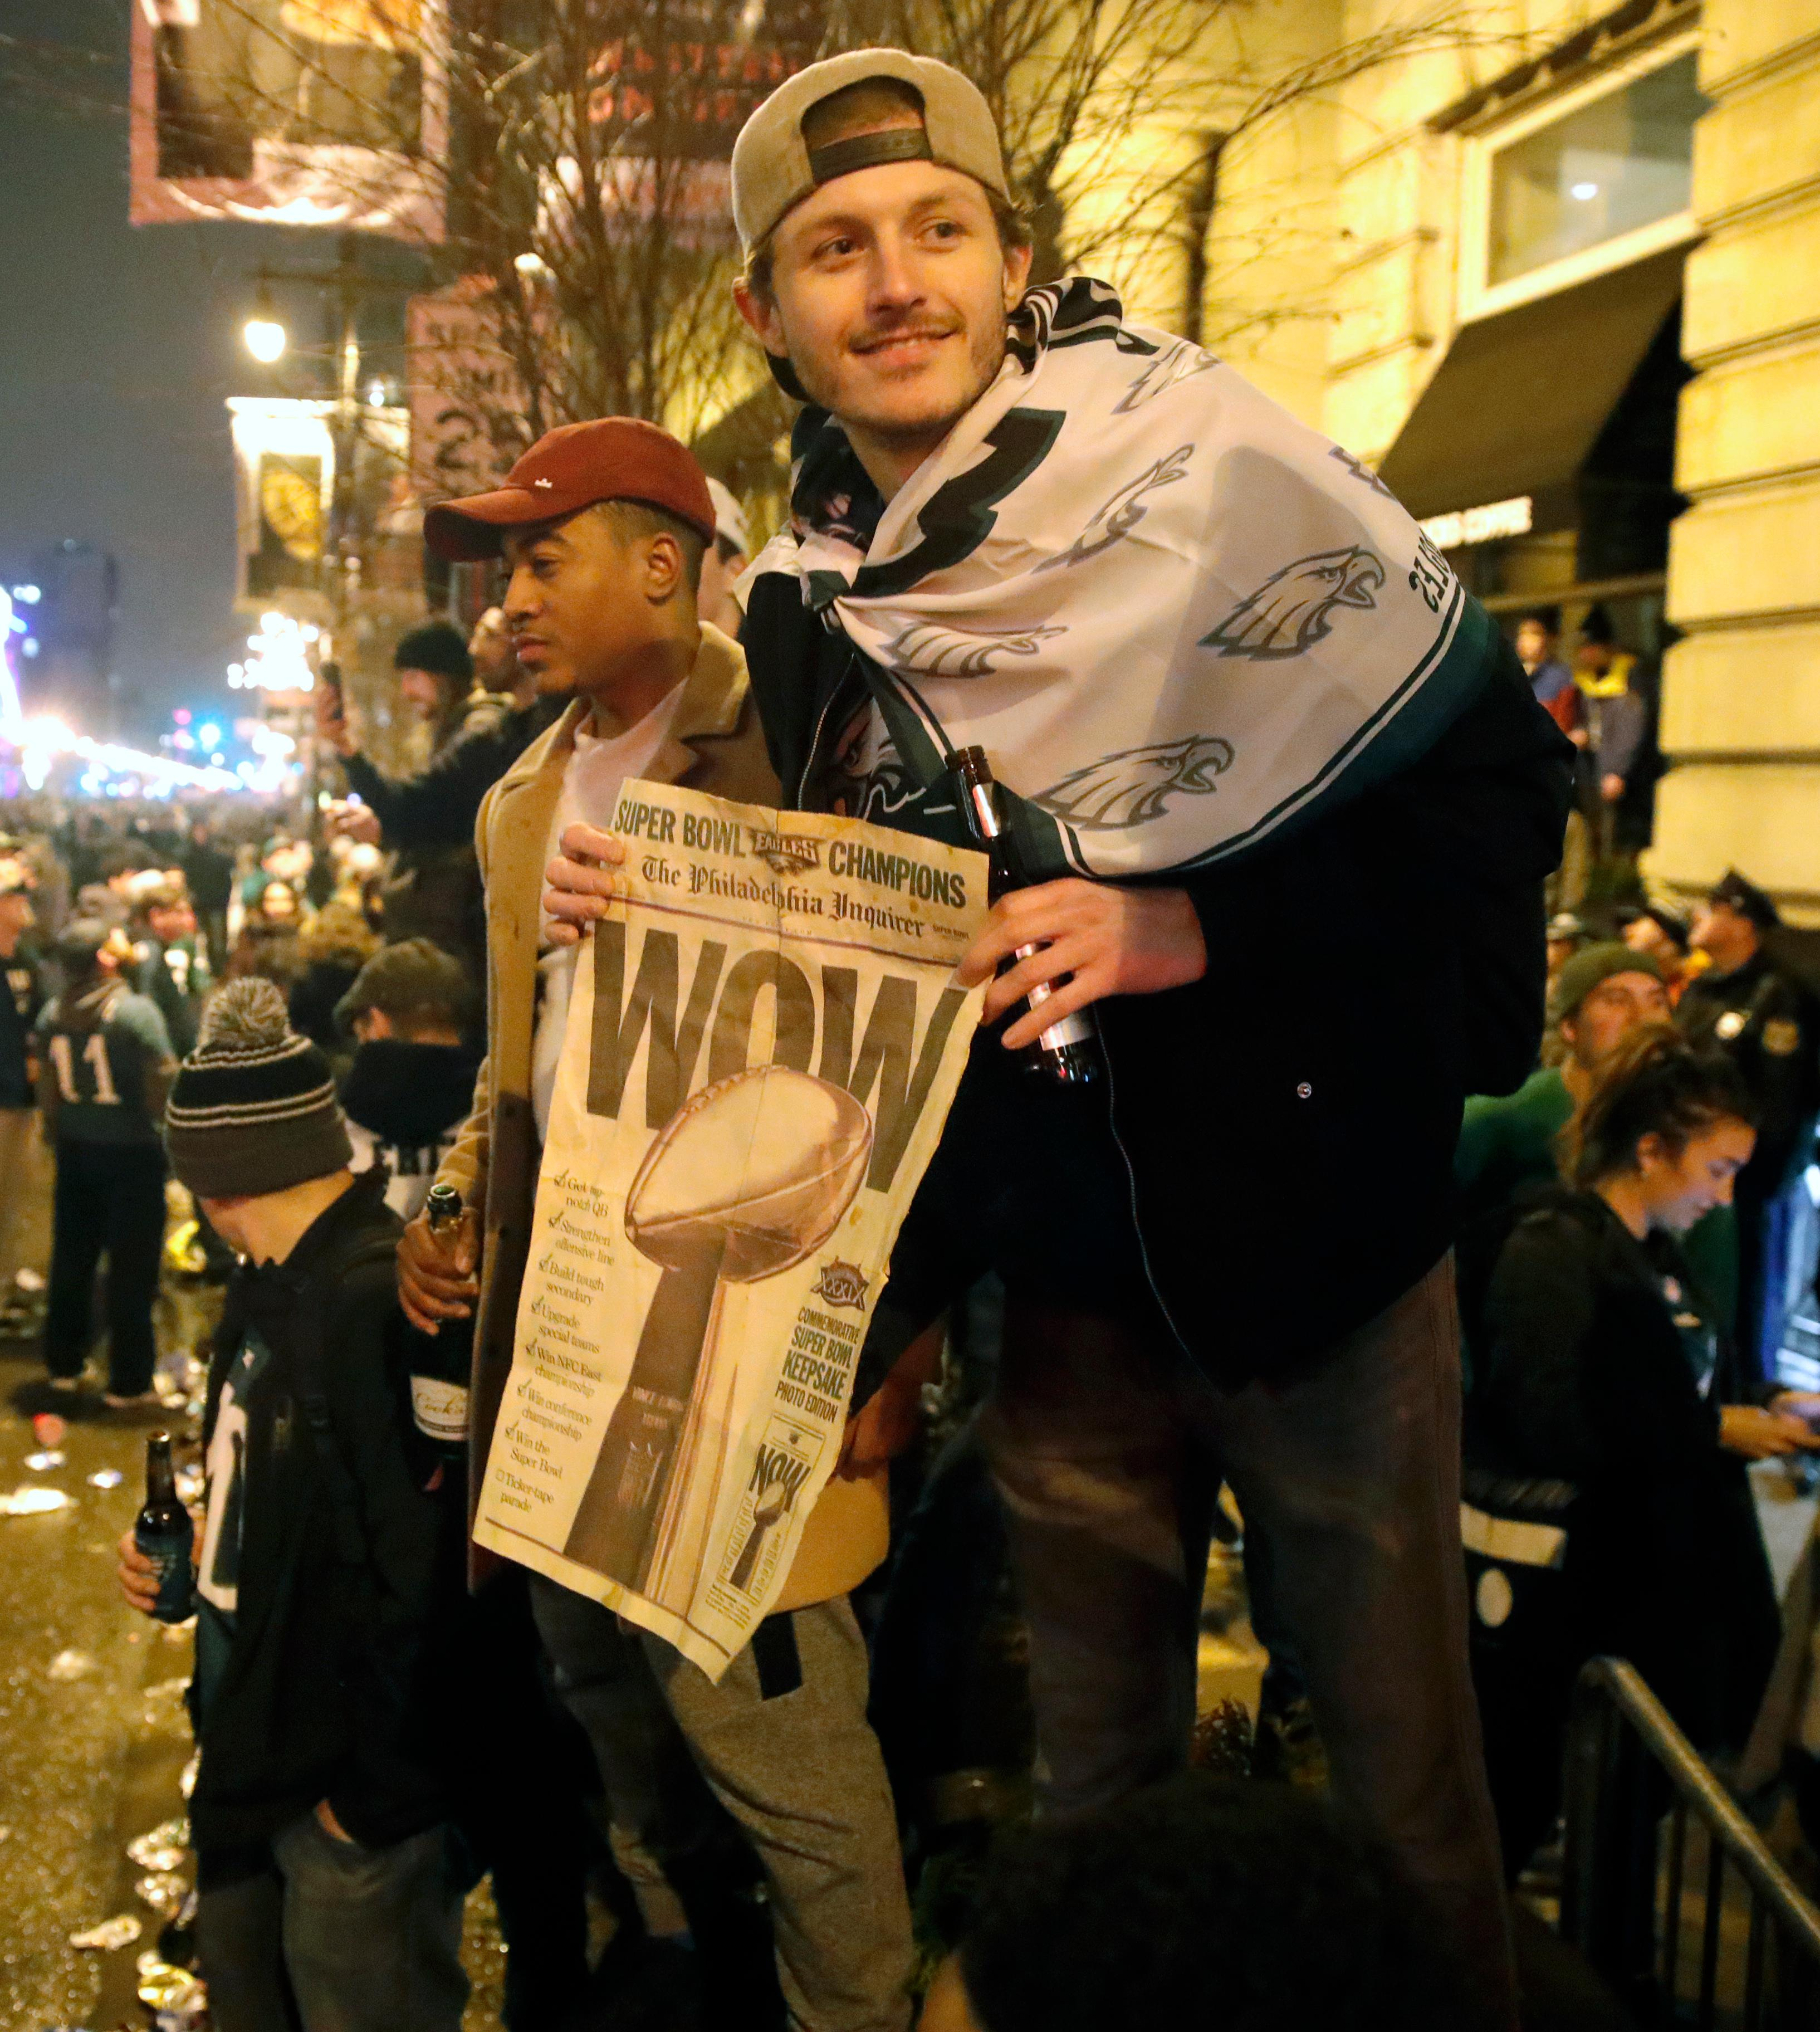 Philadelphia Eagles fans celebrate the team's victory in NFL Super Bowl 52 between the Philadelphia Eagles and the New England Patriots, Monday, Feb. 5, 2018, in downtown Philadelphia. (AP Photo/Matt Rourke)